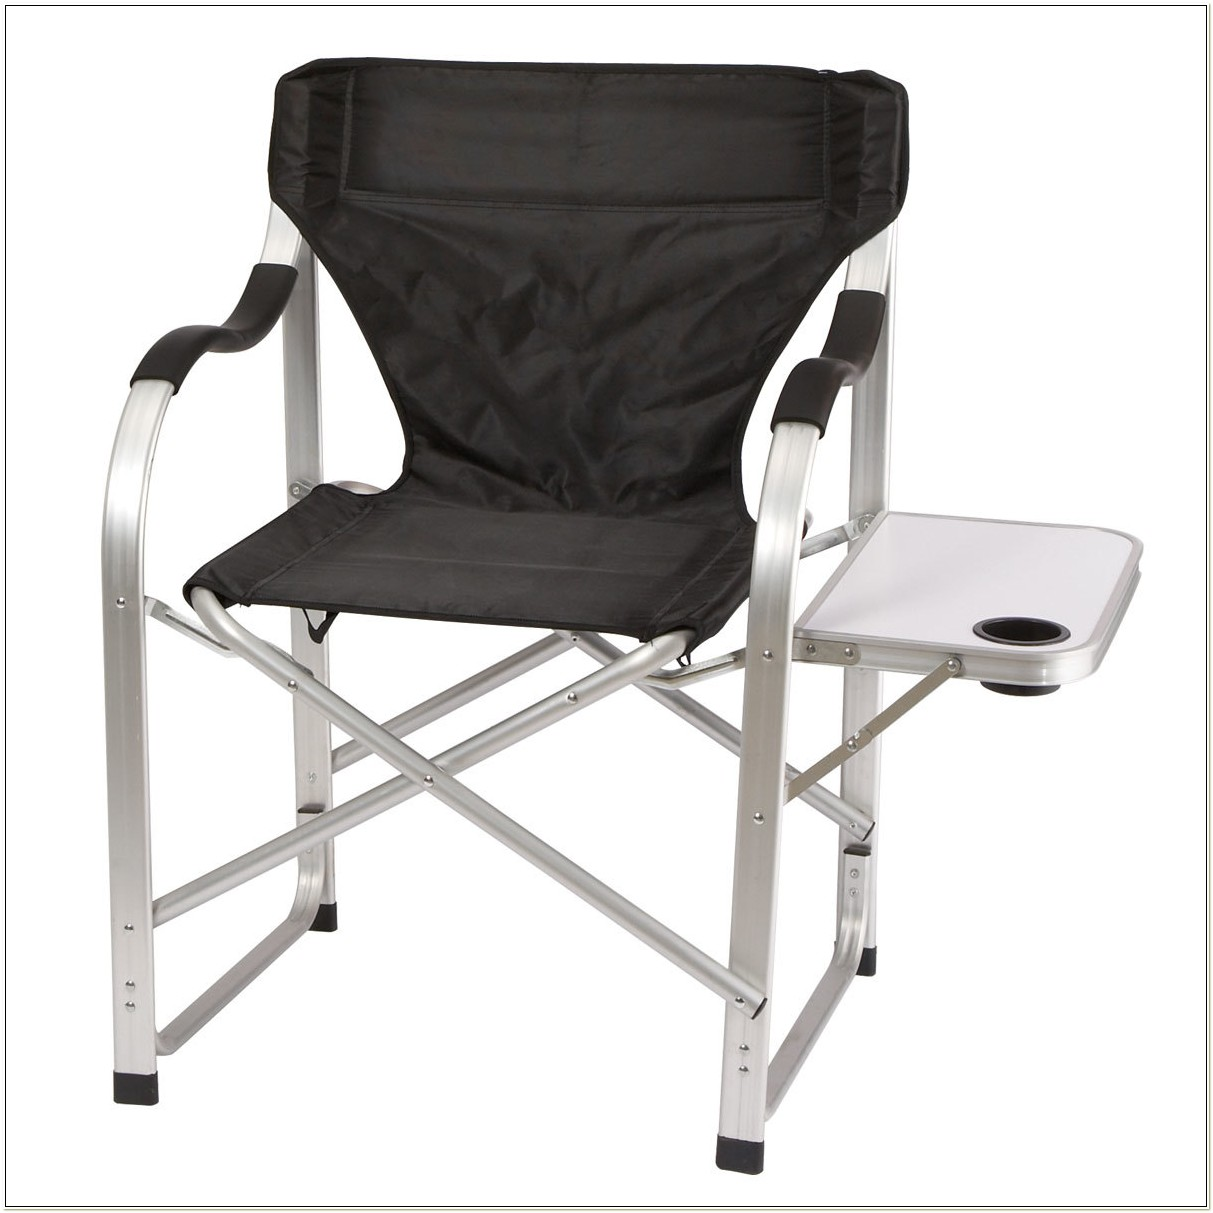 Heavy Duty Collapsible Lawn Chair